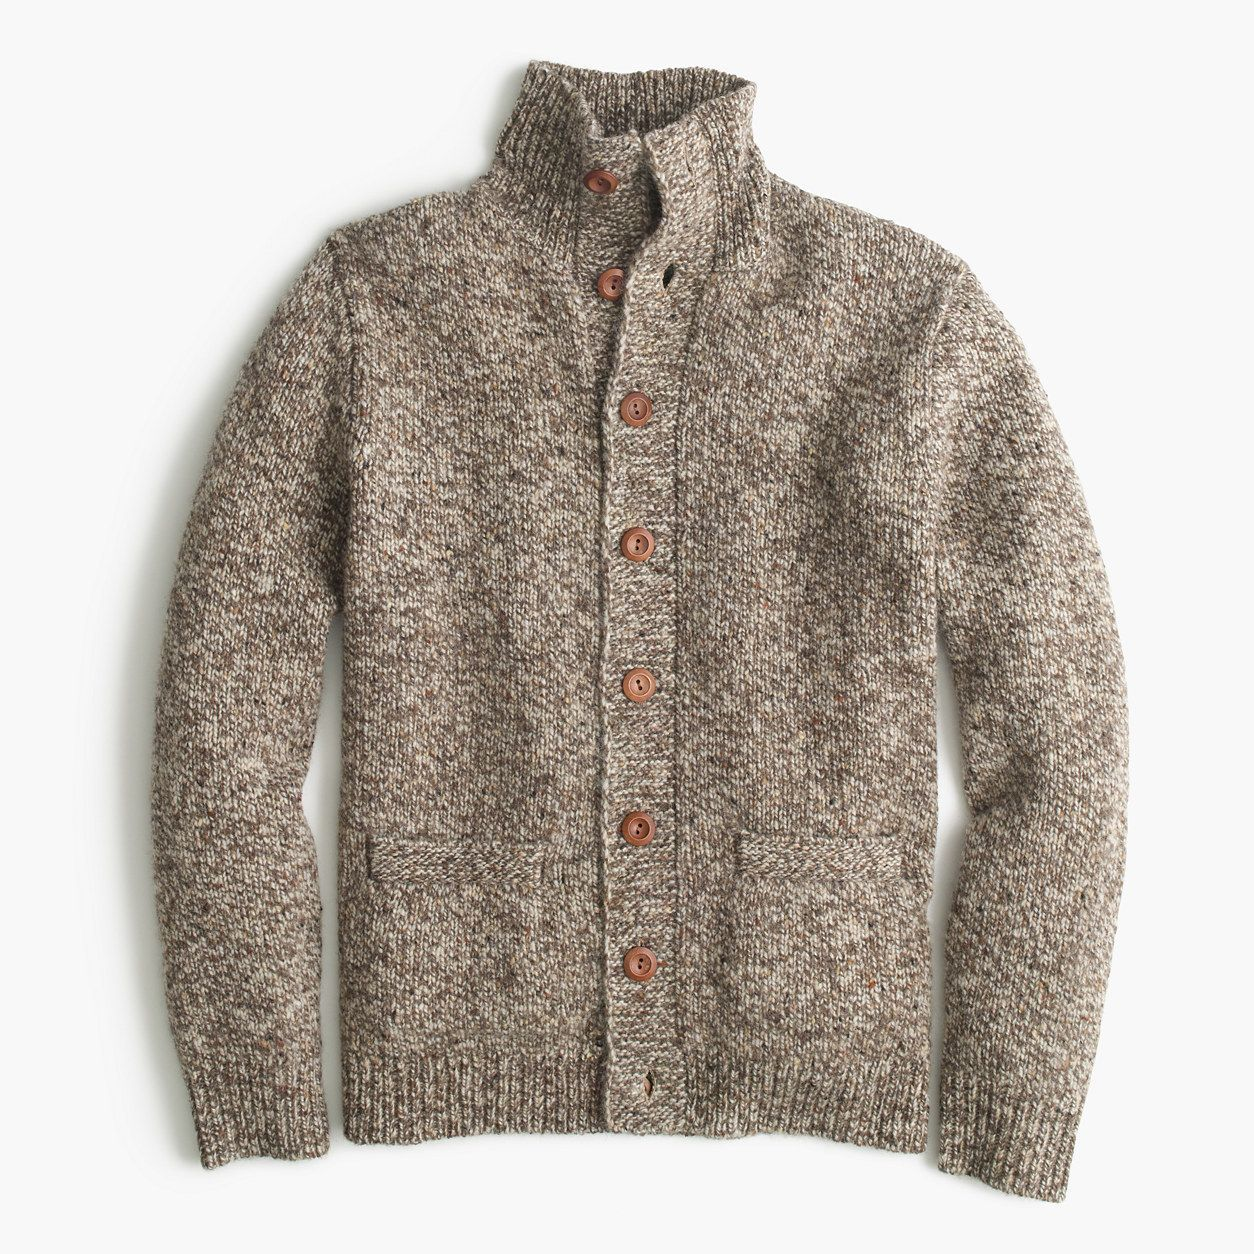 Donegal wool mockneck cardigan sweater products